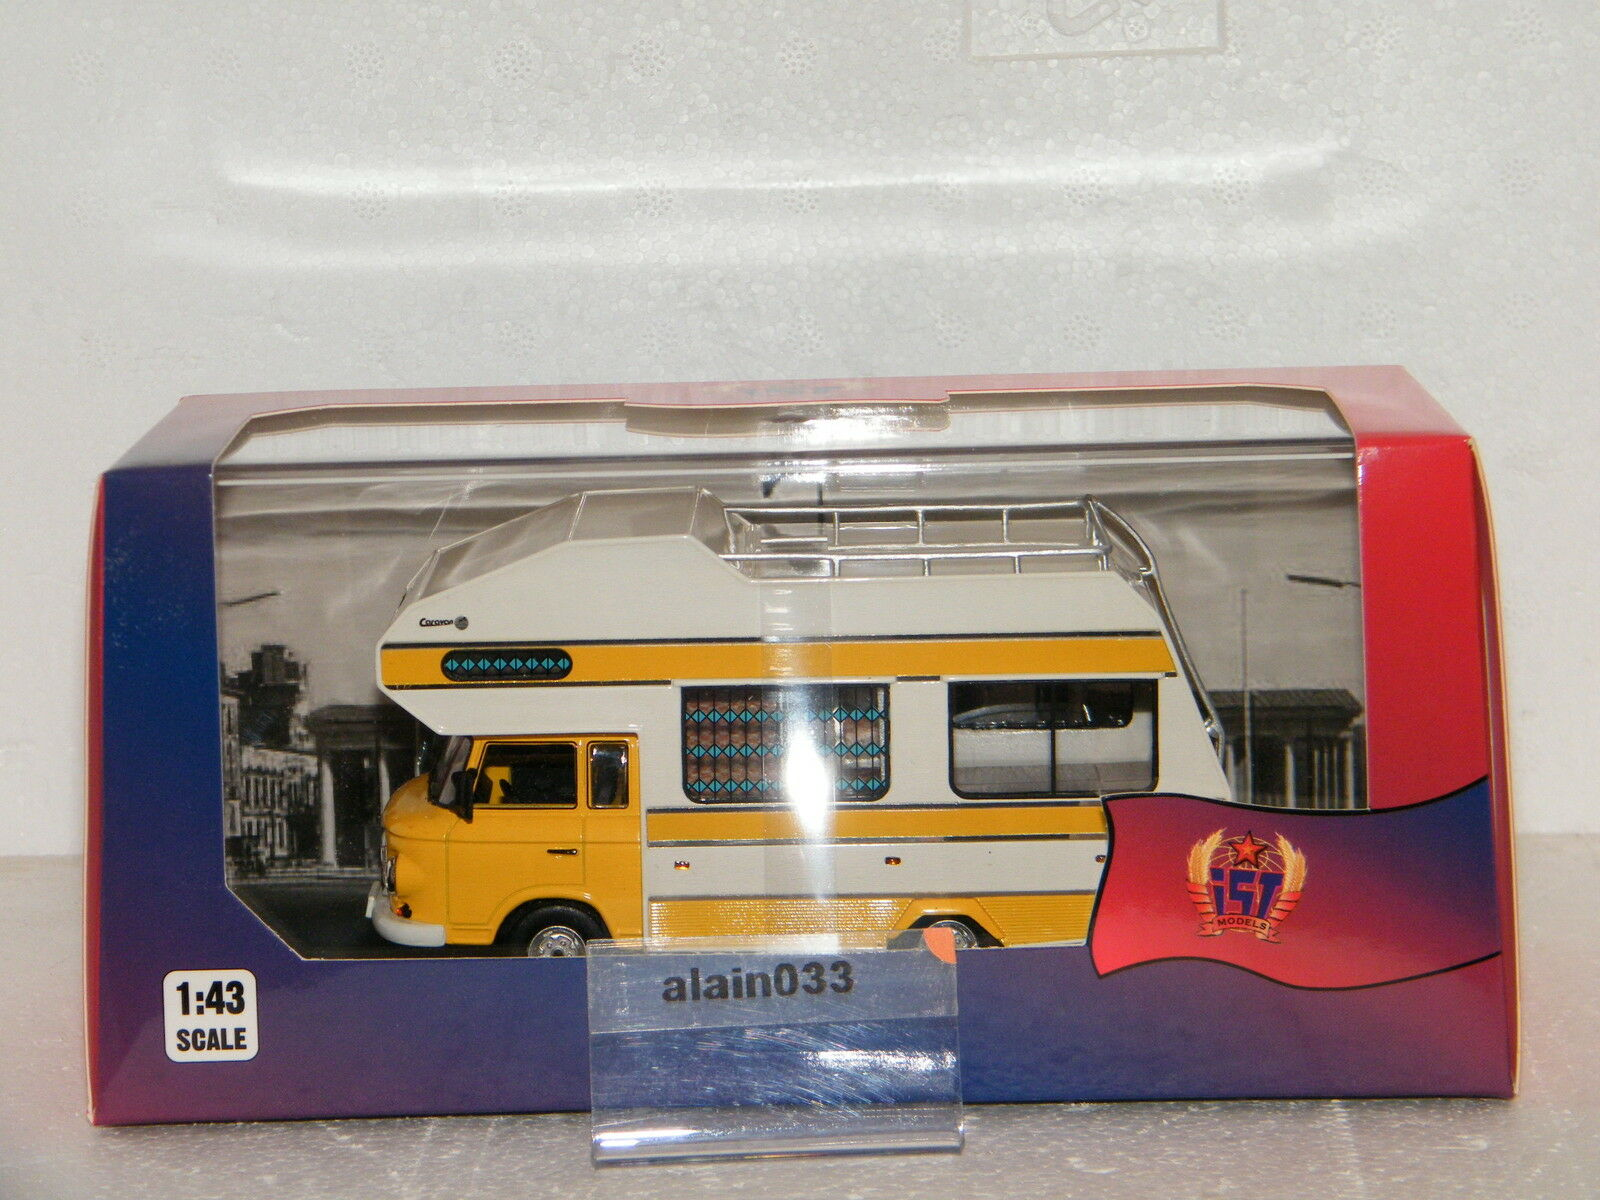 Prix ​​double section BARKAS BARKAS BARKAS B1000 CARAVAN 1973 Yellow Istmodels 1/43 Ref IST 298MR | Outlet Online Store